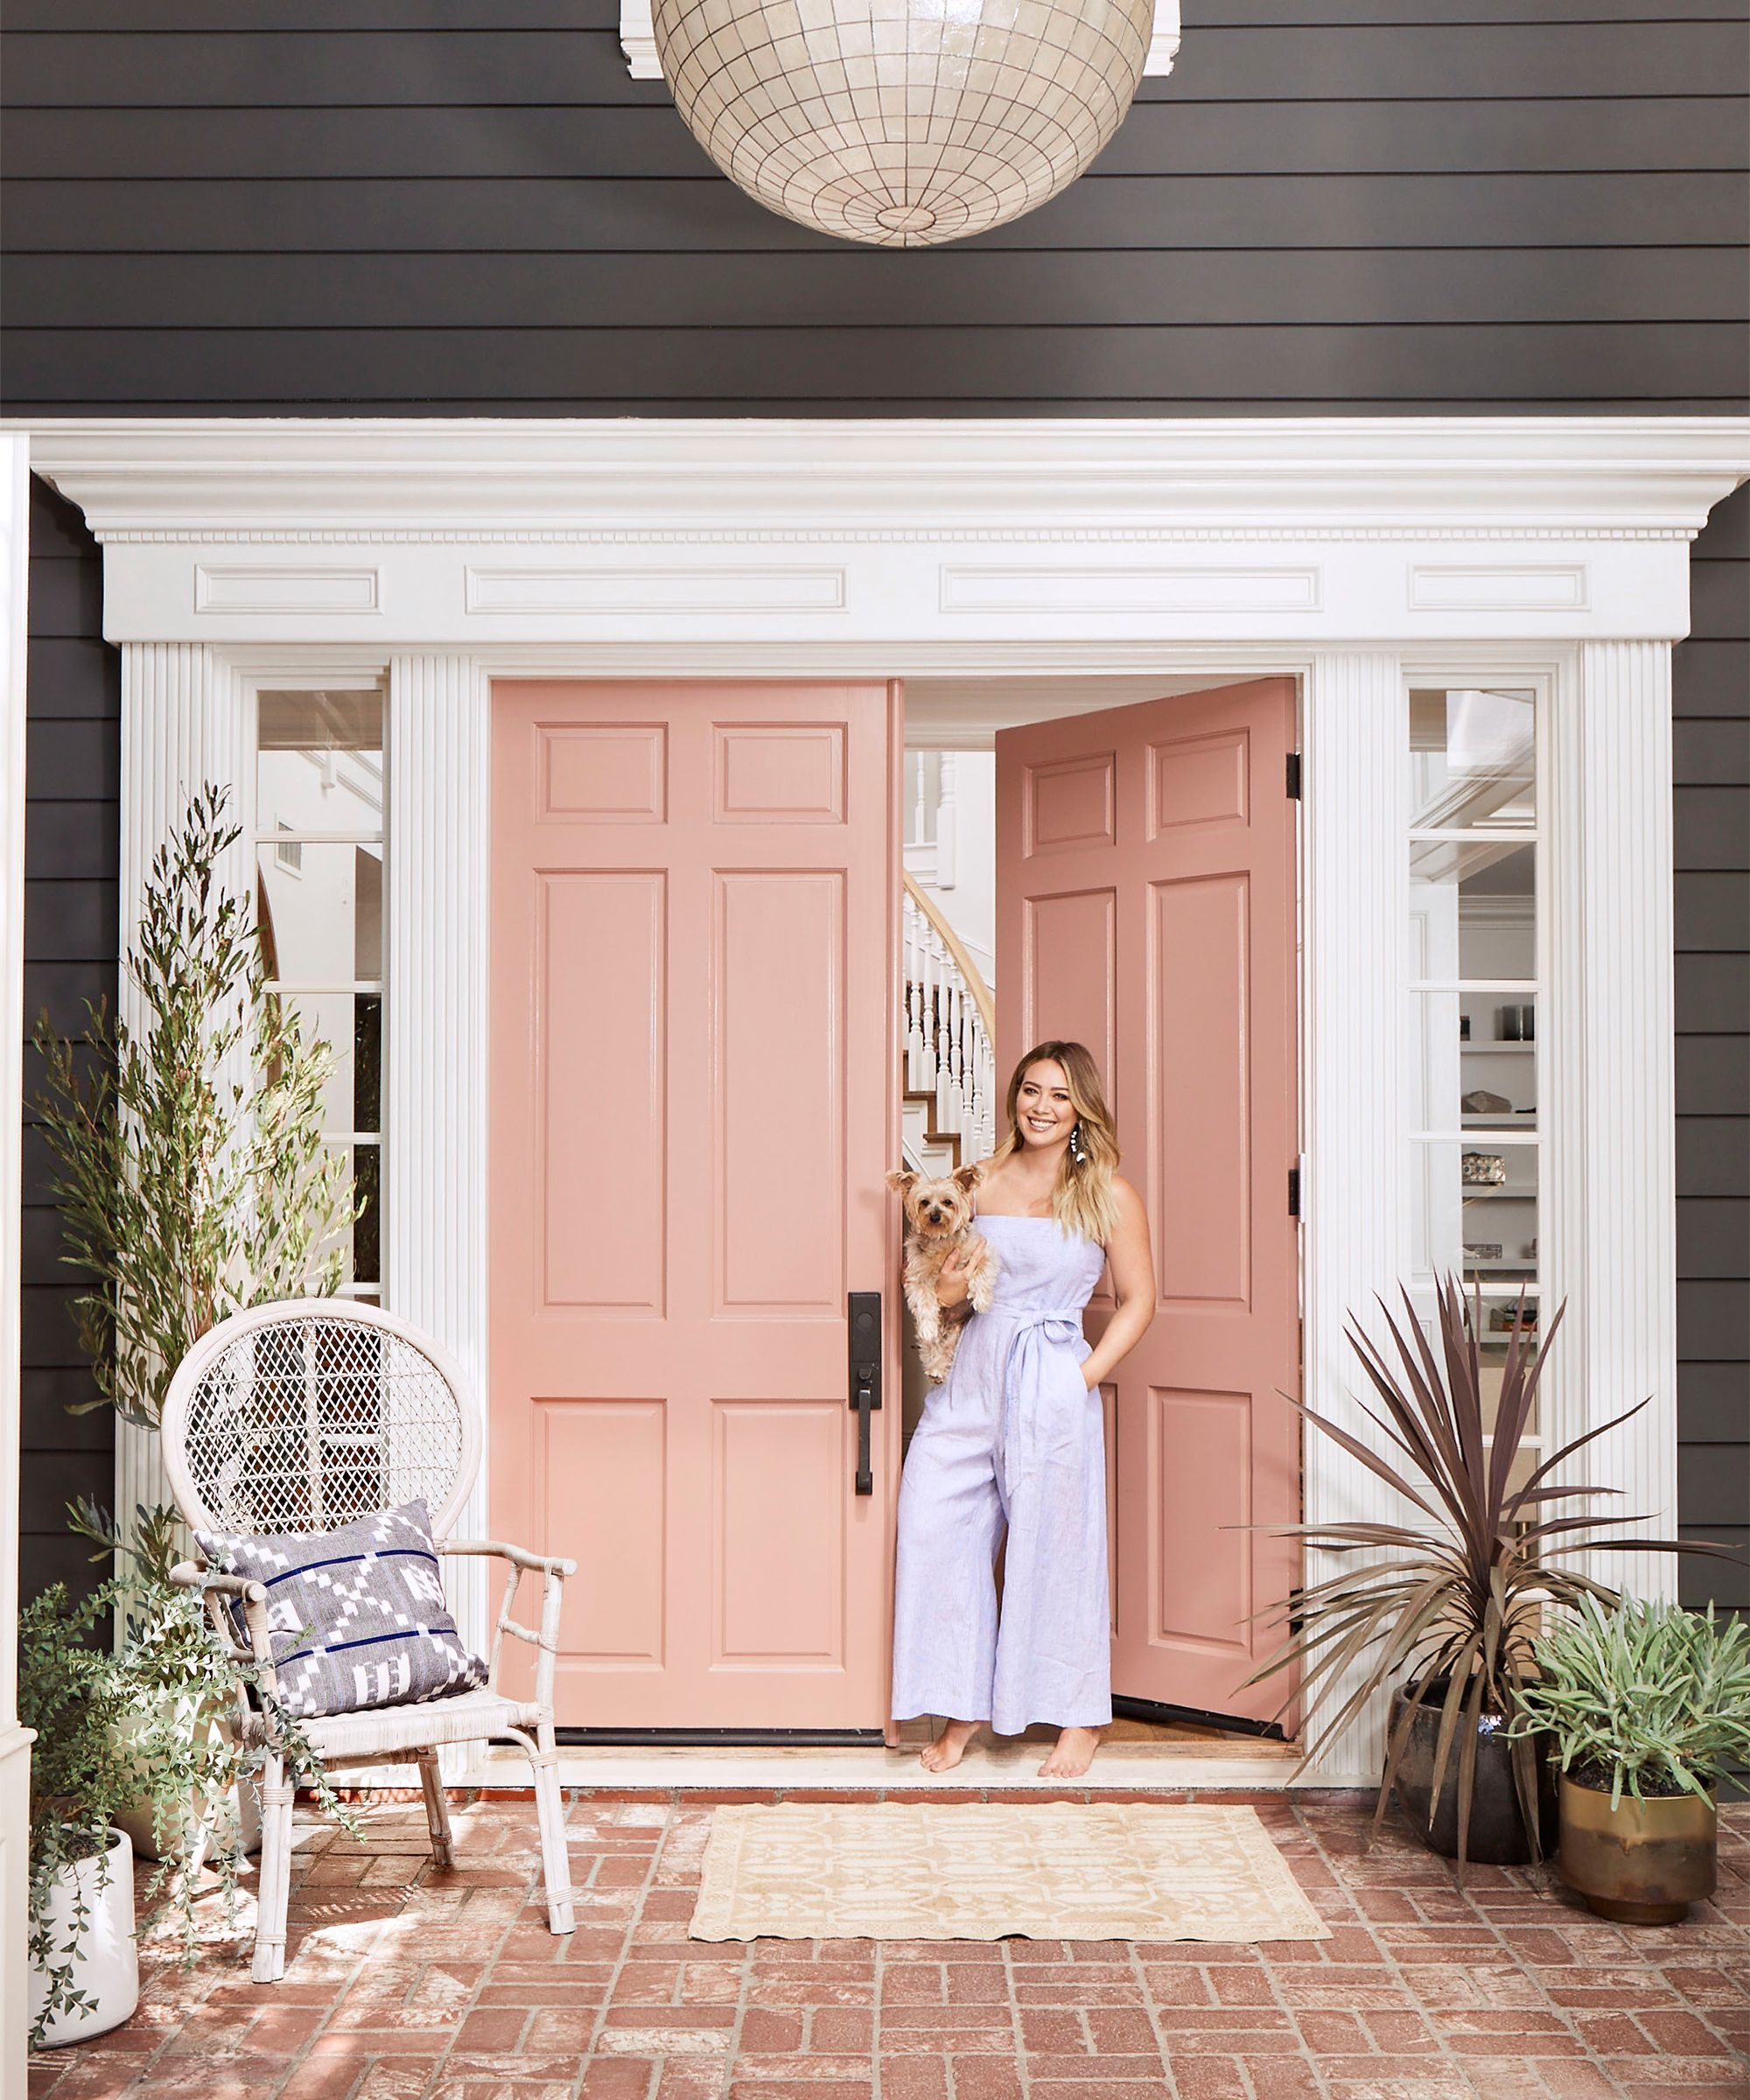 Hilary Duff Shares Her Home Decorating Style A Millennial Pink Door Is Just The Jumping Off Point Pink Front Door Pink Door Painted Front Doors